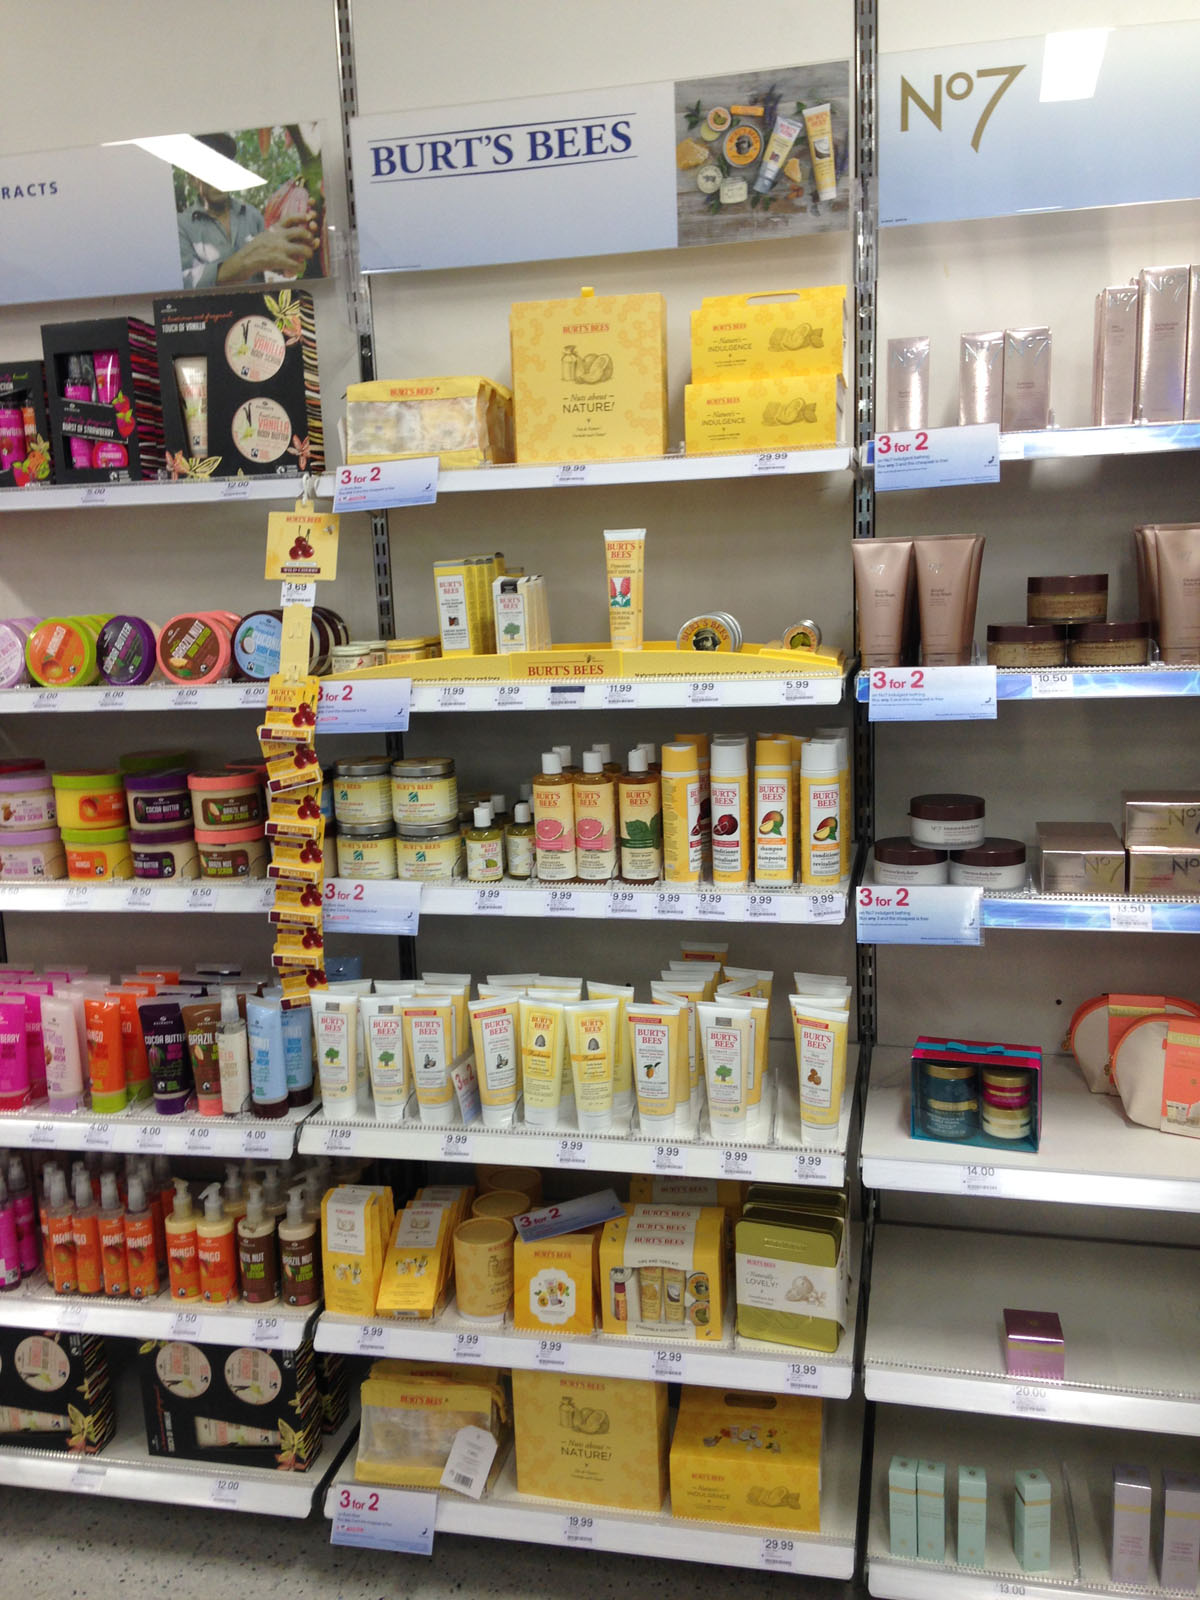 full length shelves of Burt's Bees products